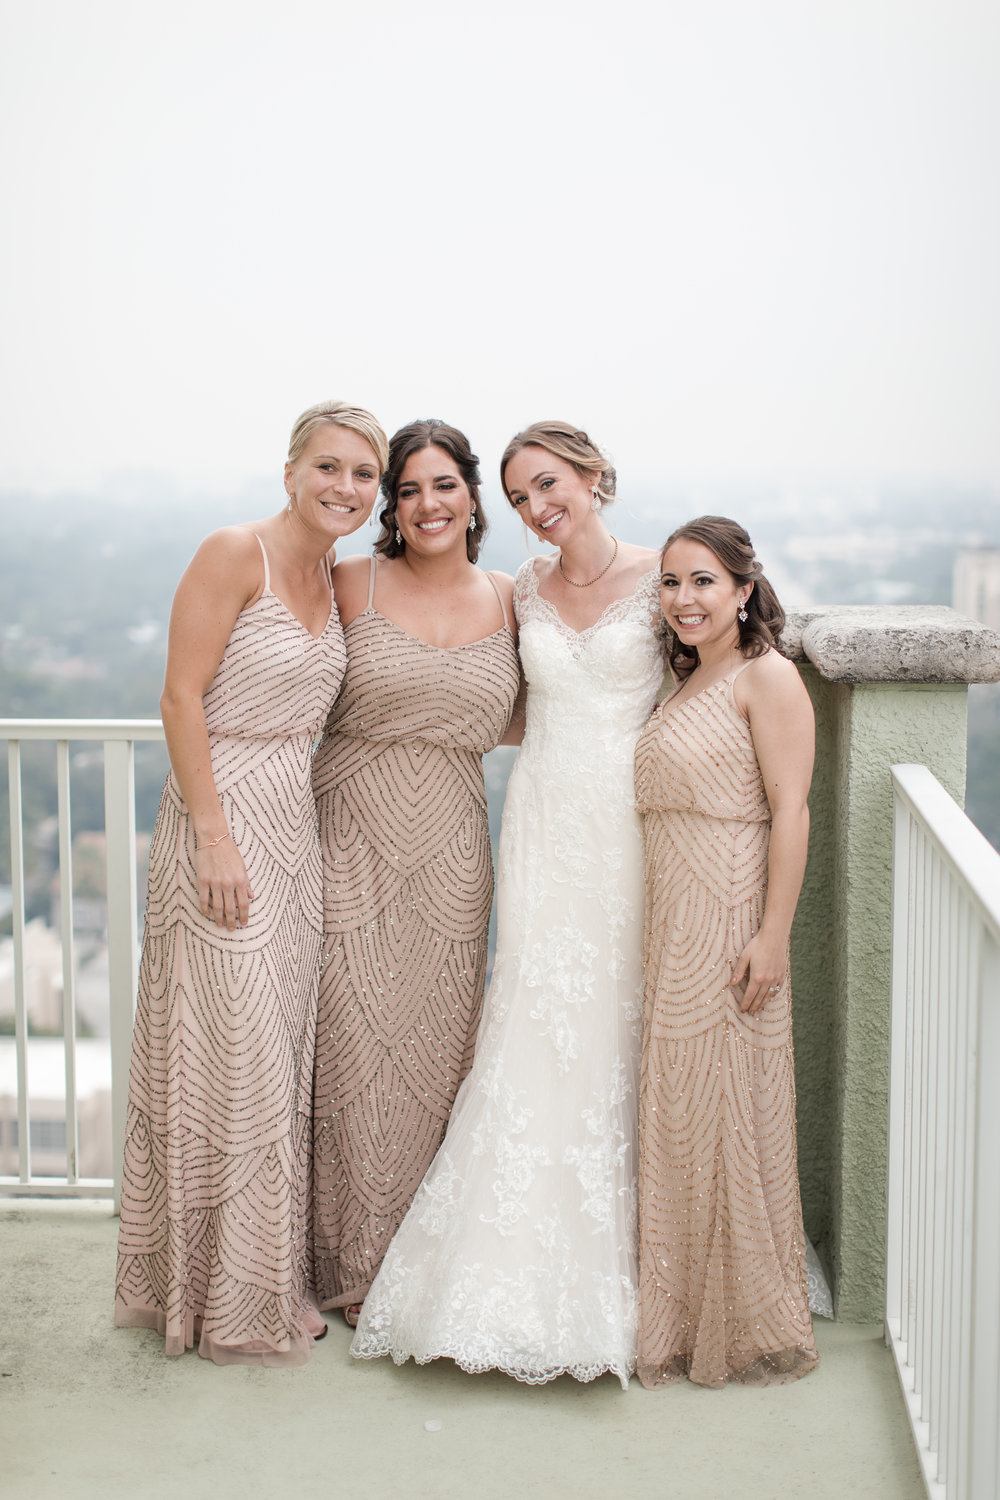 South-Florida-wedding-photographer-fort-lauderdale-venue-fog-bridesmaids